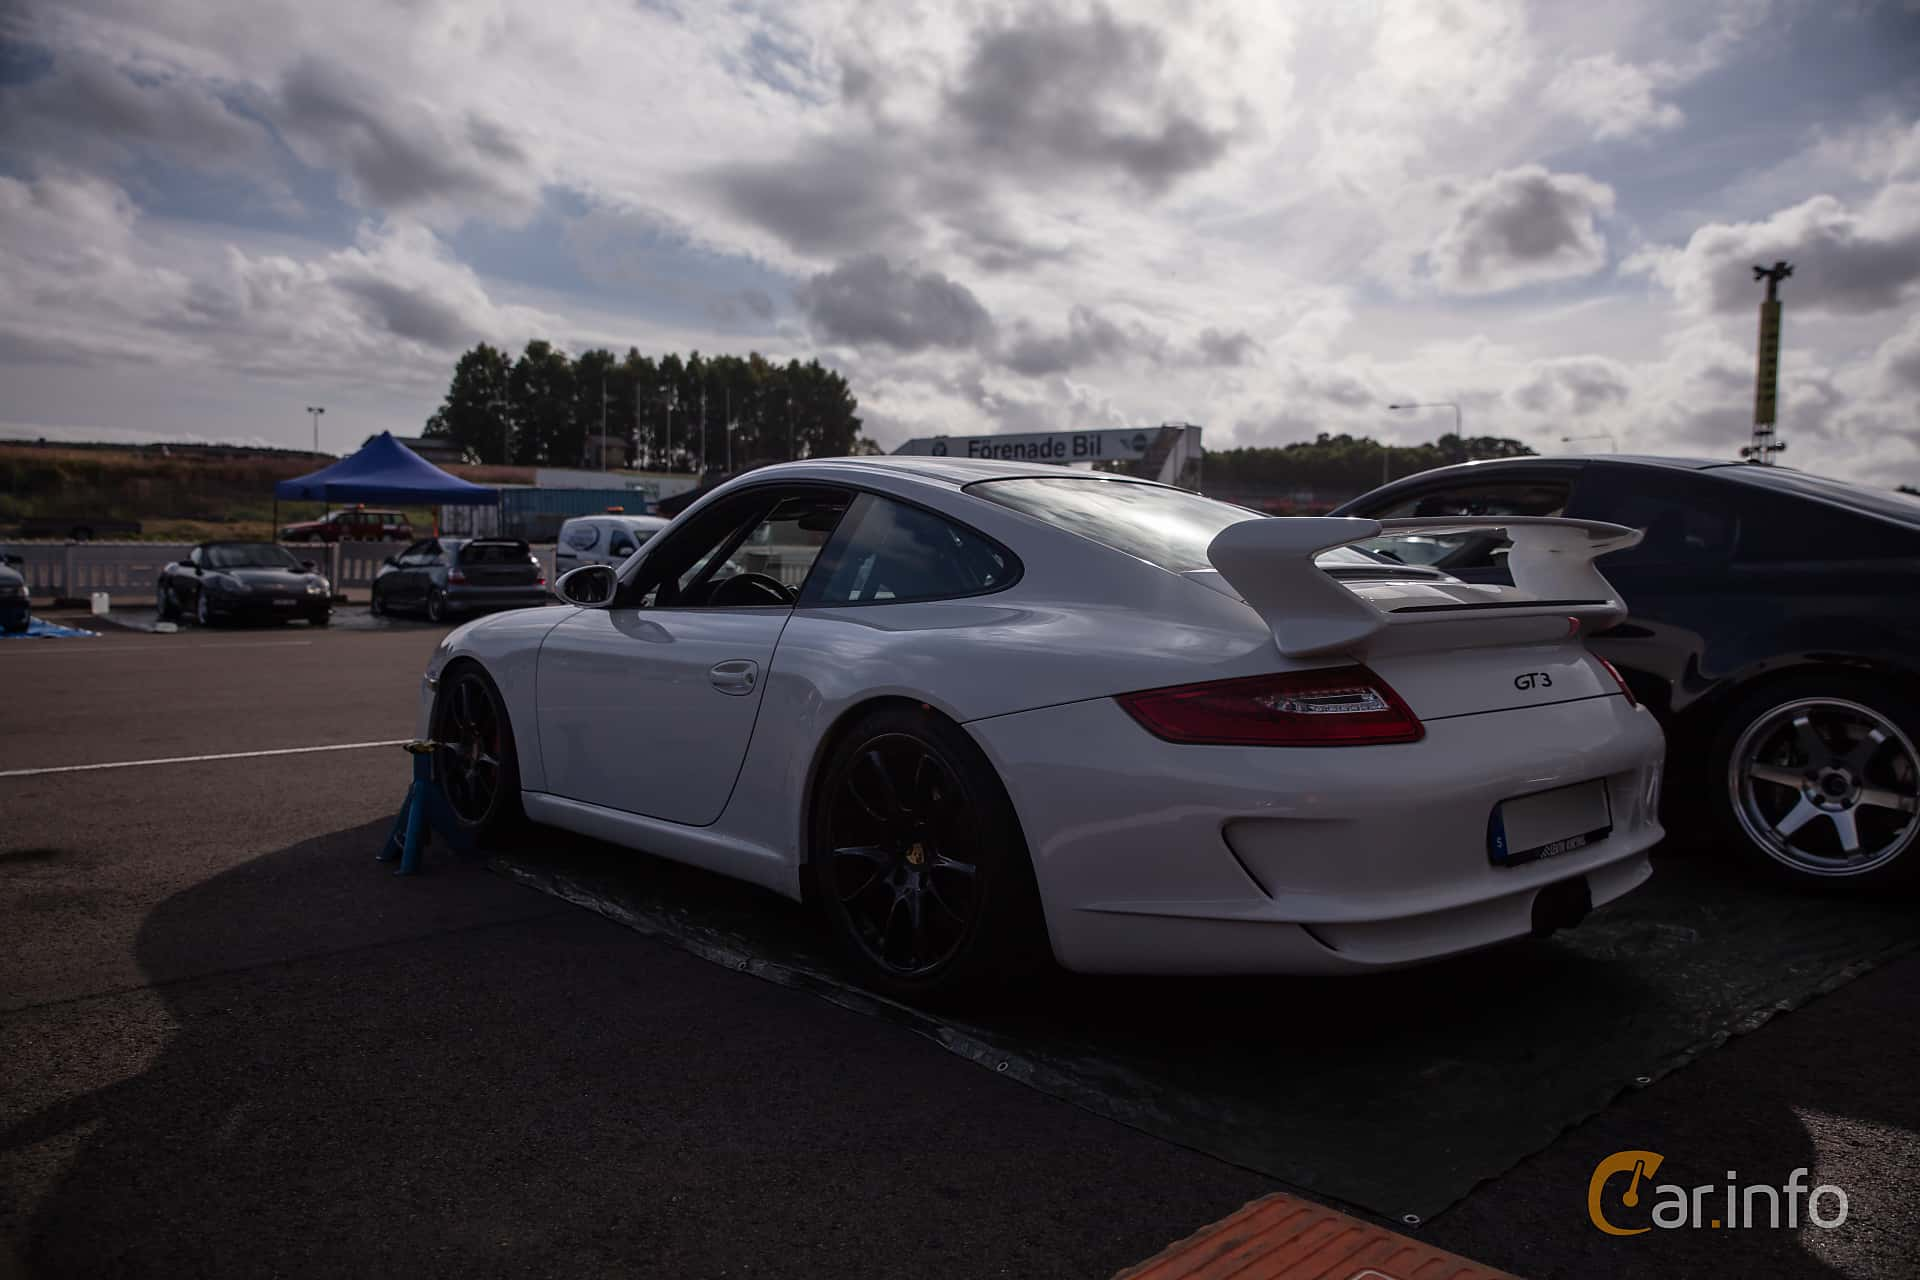 Back/Side of Porsche 911 GT3 3.6 H6 Manual, 415ps, 2007 at JapTuning Trackday 2018 Knutstorp